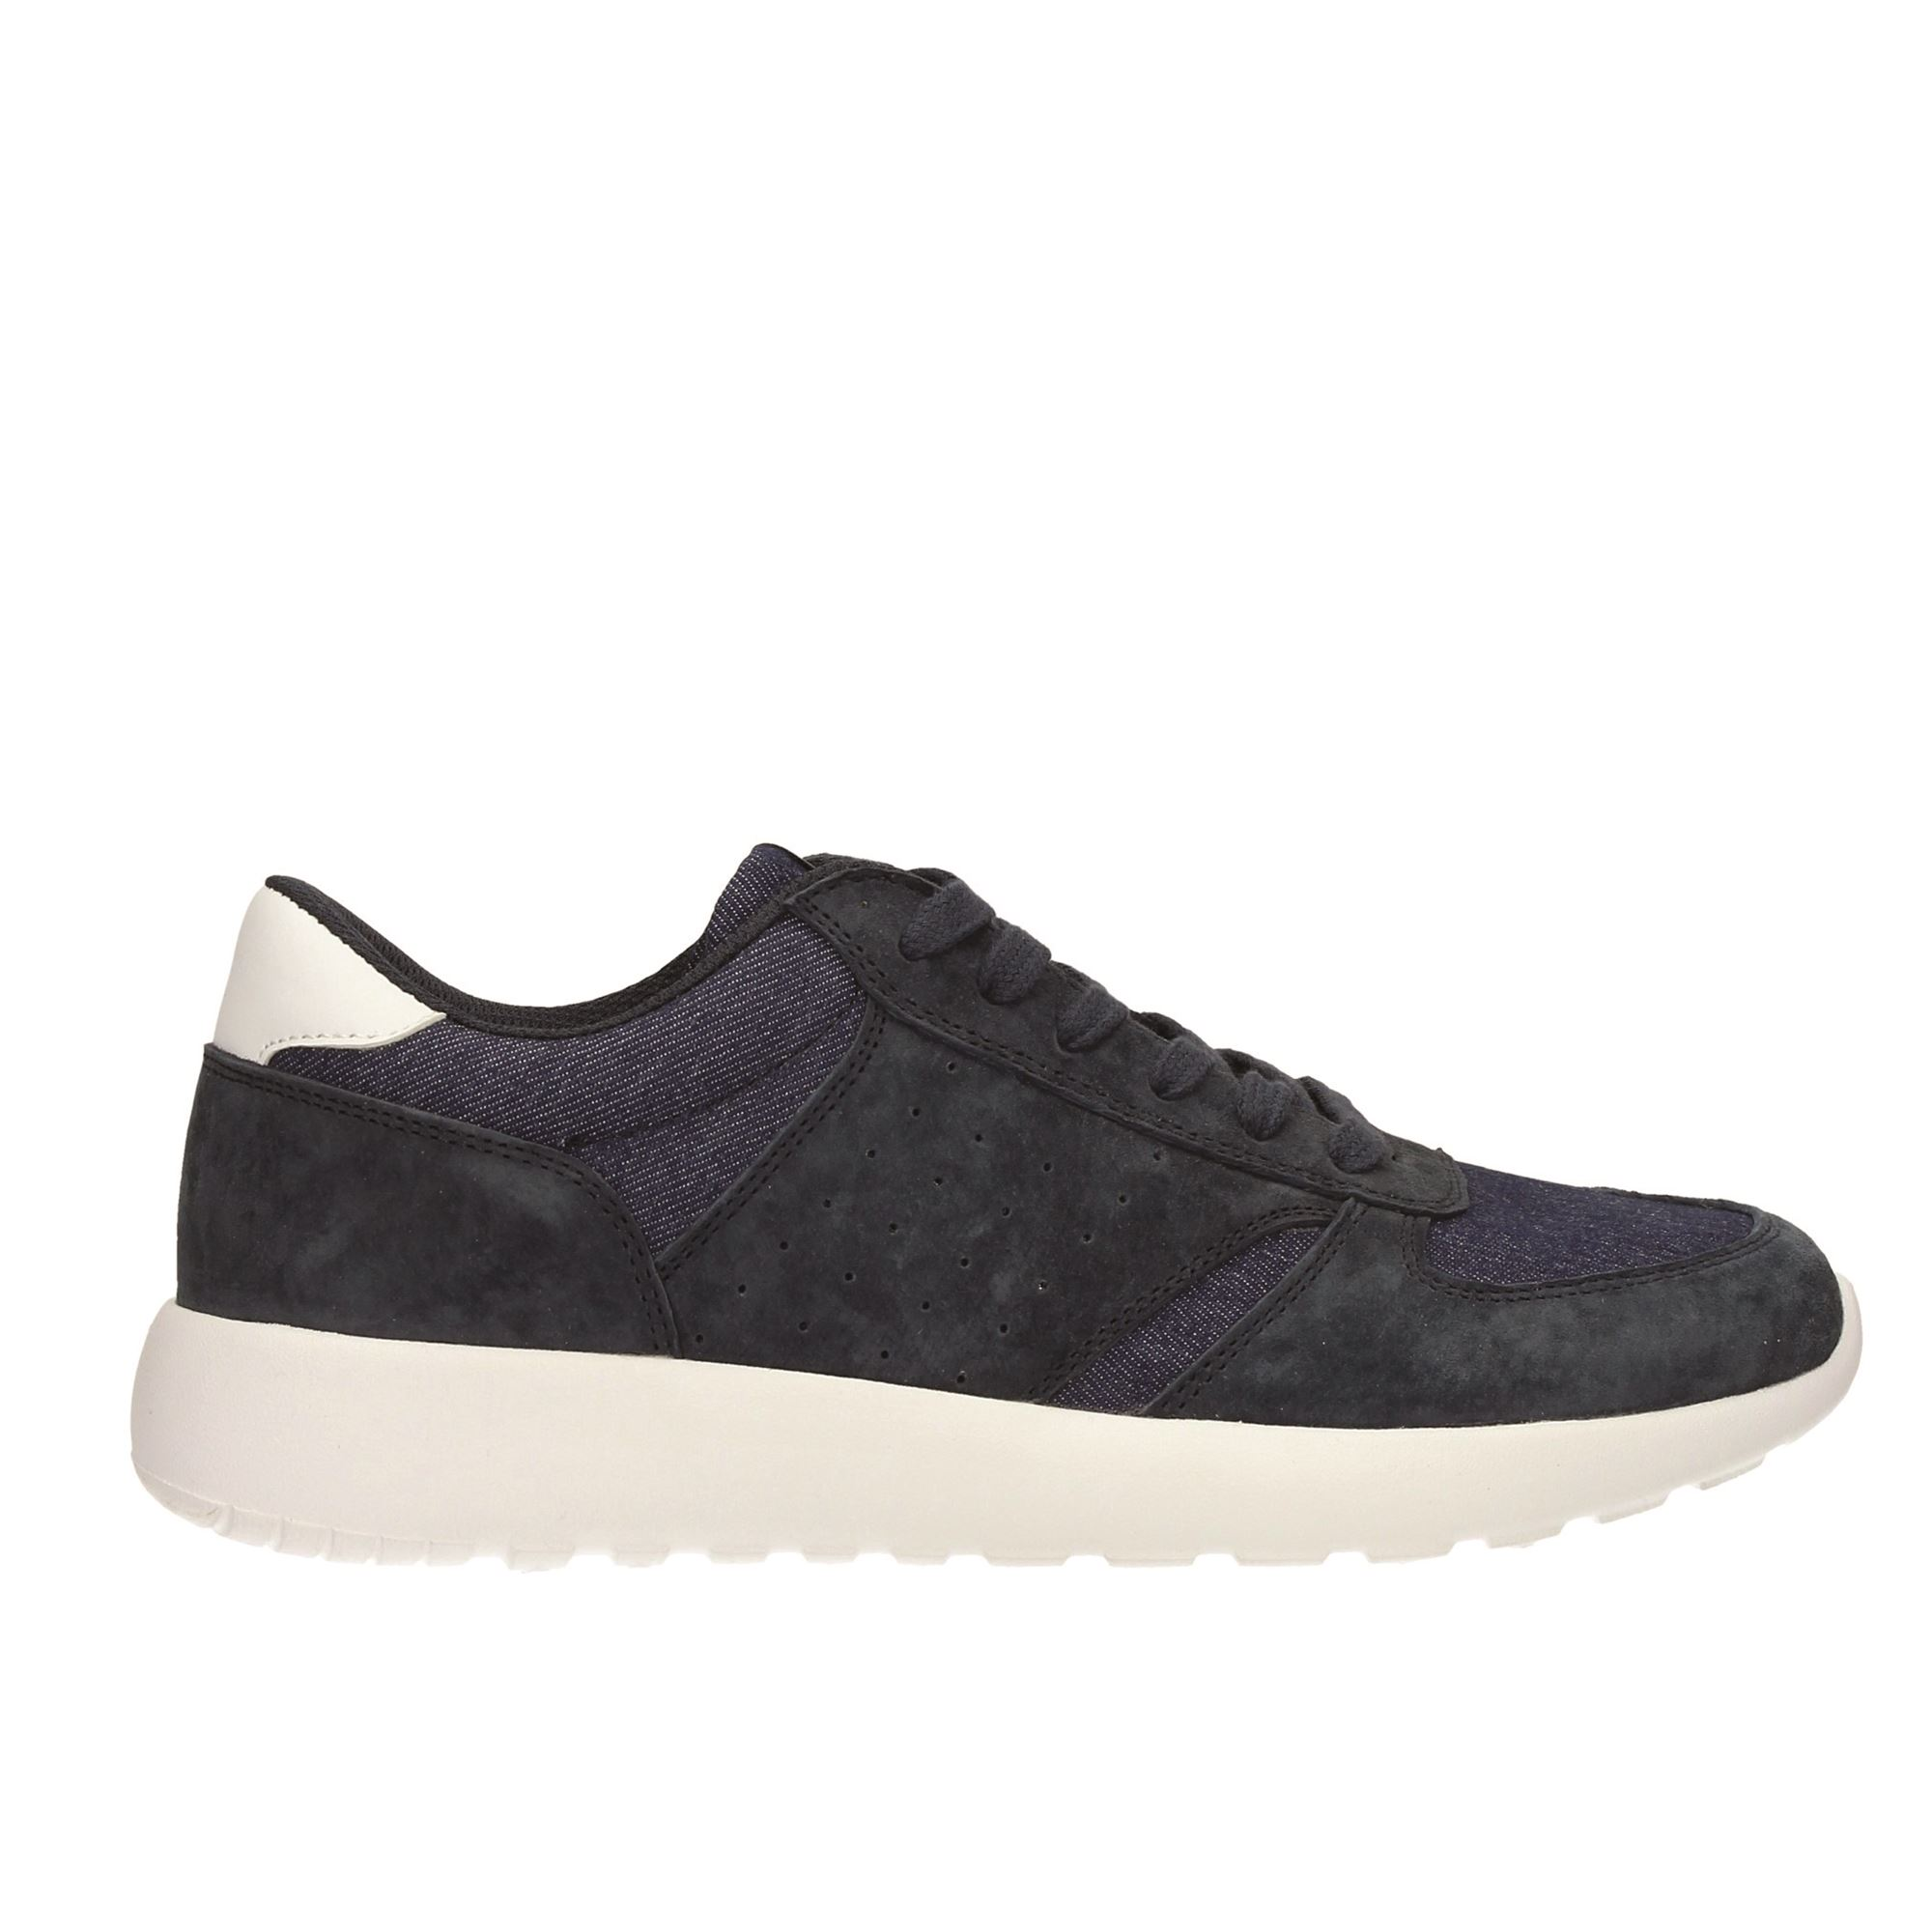 Tata Italia Shoes Man Sneakers Navy STP18-123